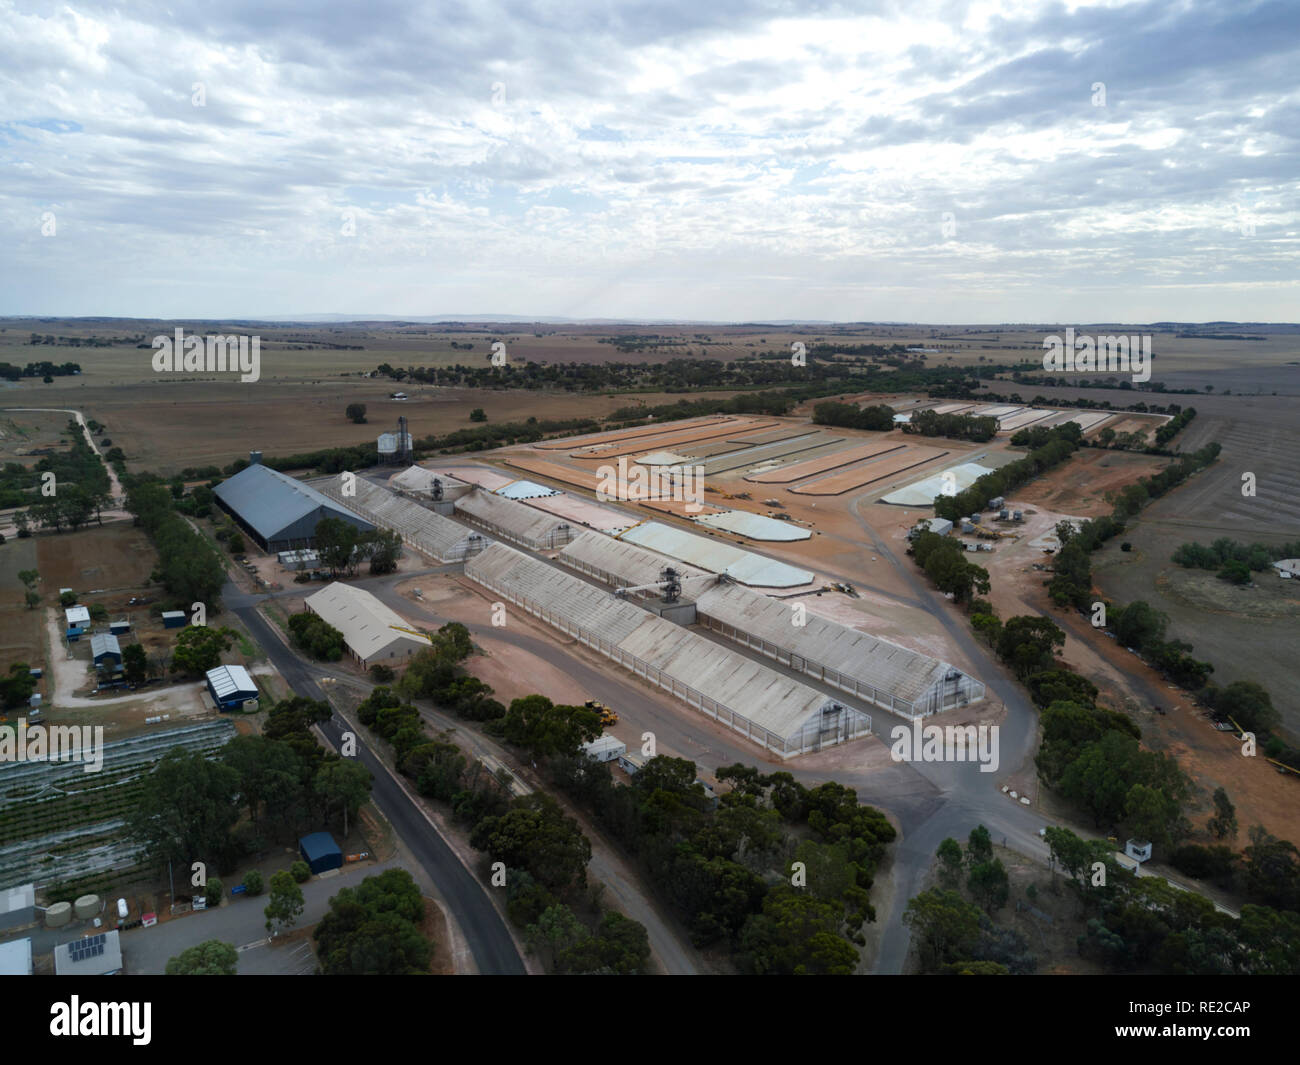 Aerials of grain storage facilities including bunking for roadtrains at Gladstone South Australia - Stock Image